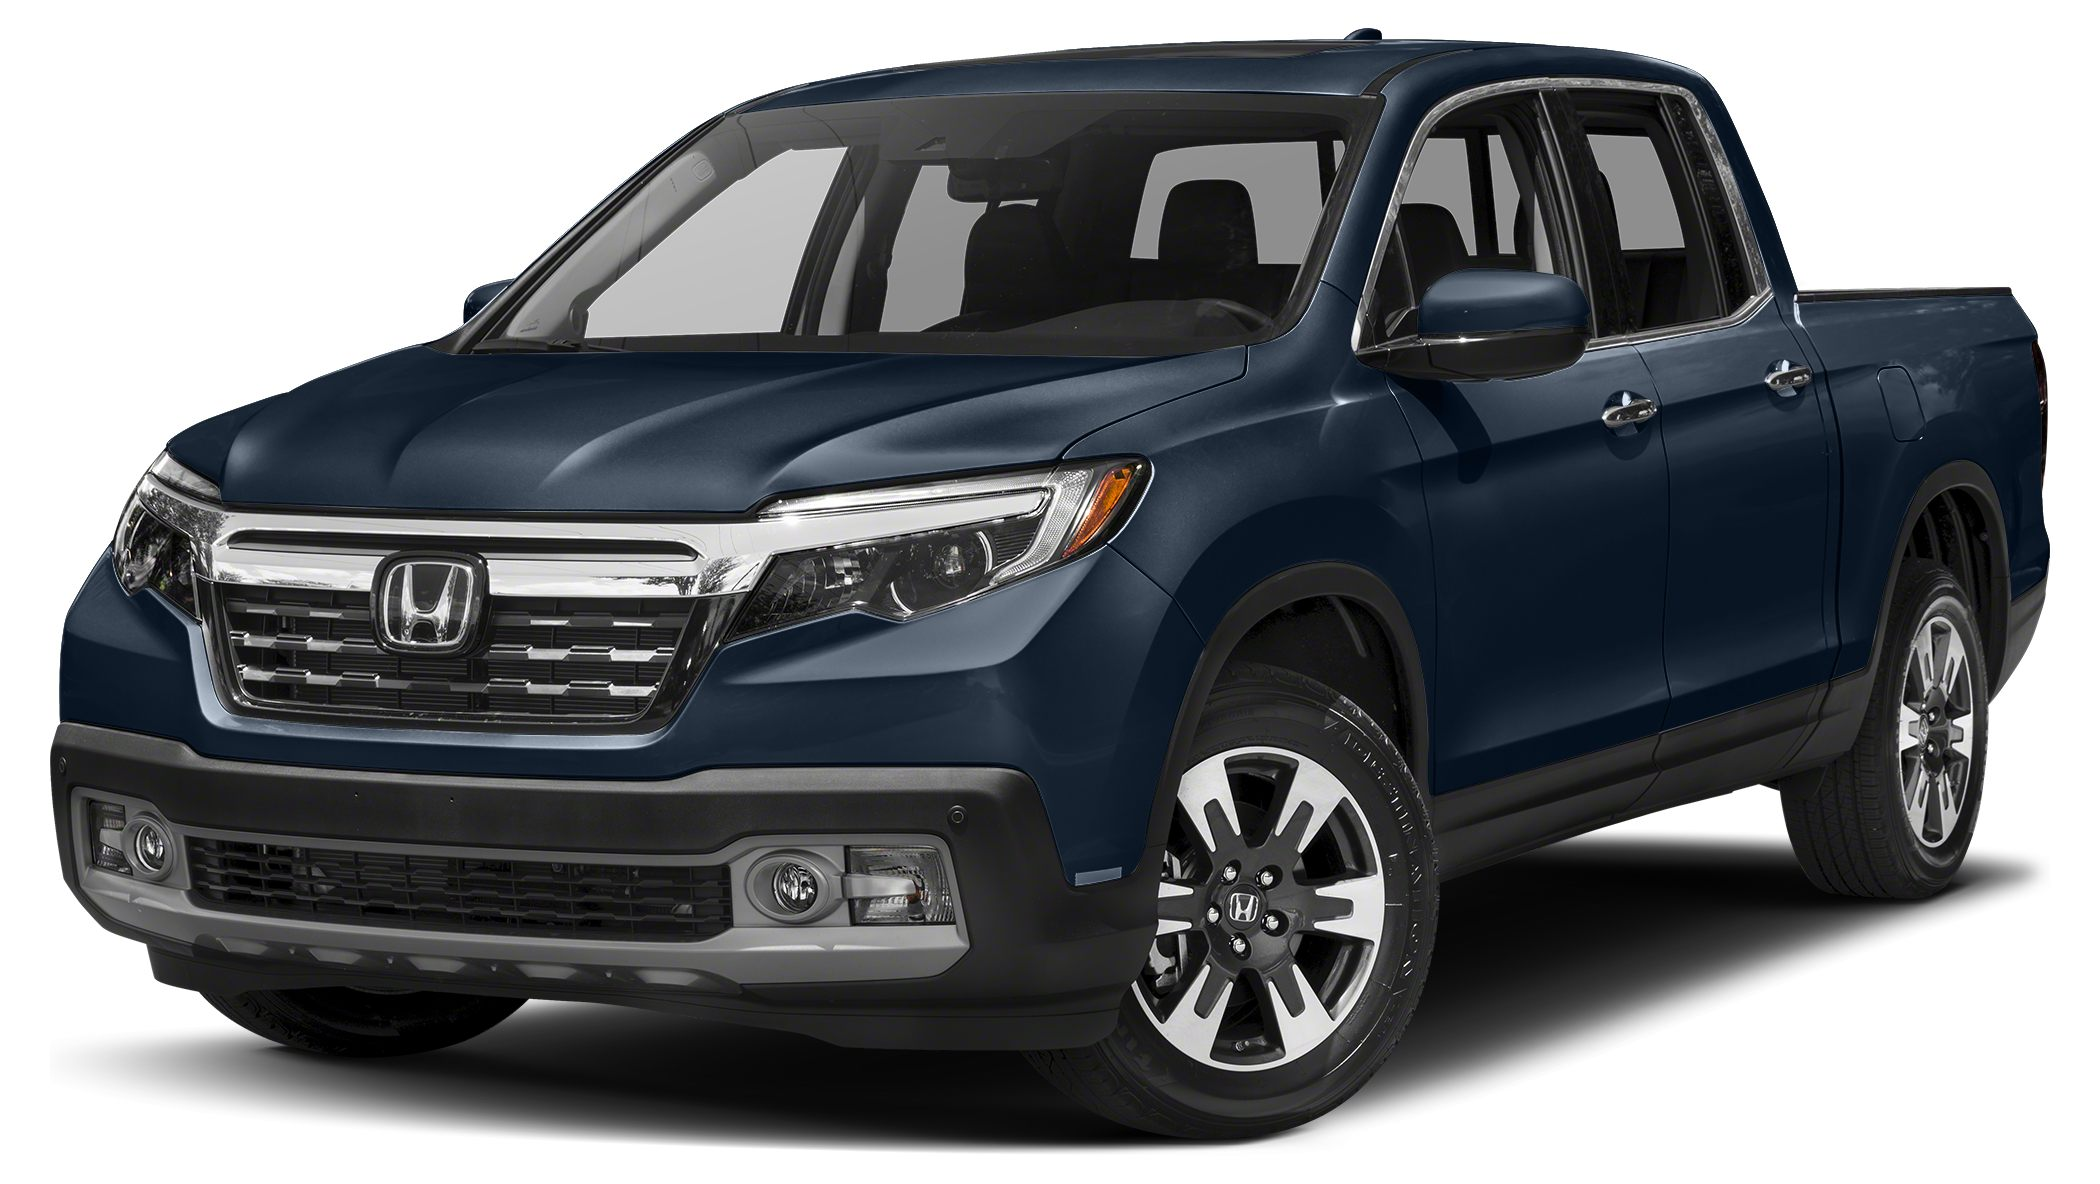 2017 Honda Ridgeline RTL-T Gray Leather Talk about a deal Ready to roll Buy a new Honda from Di